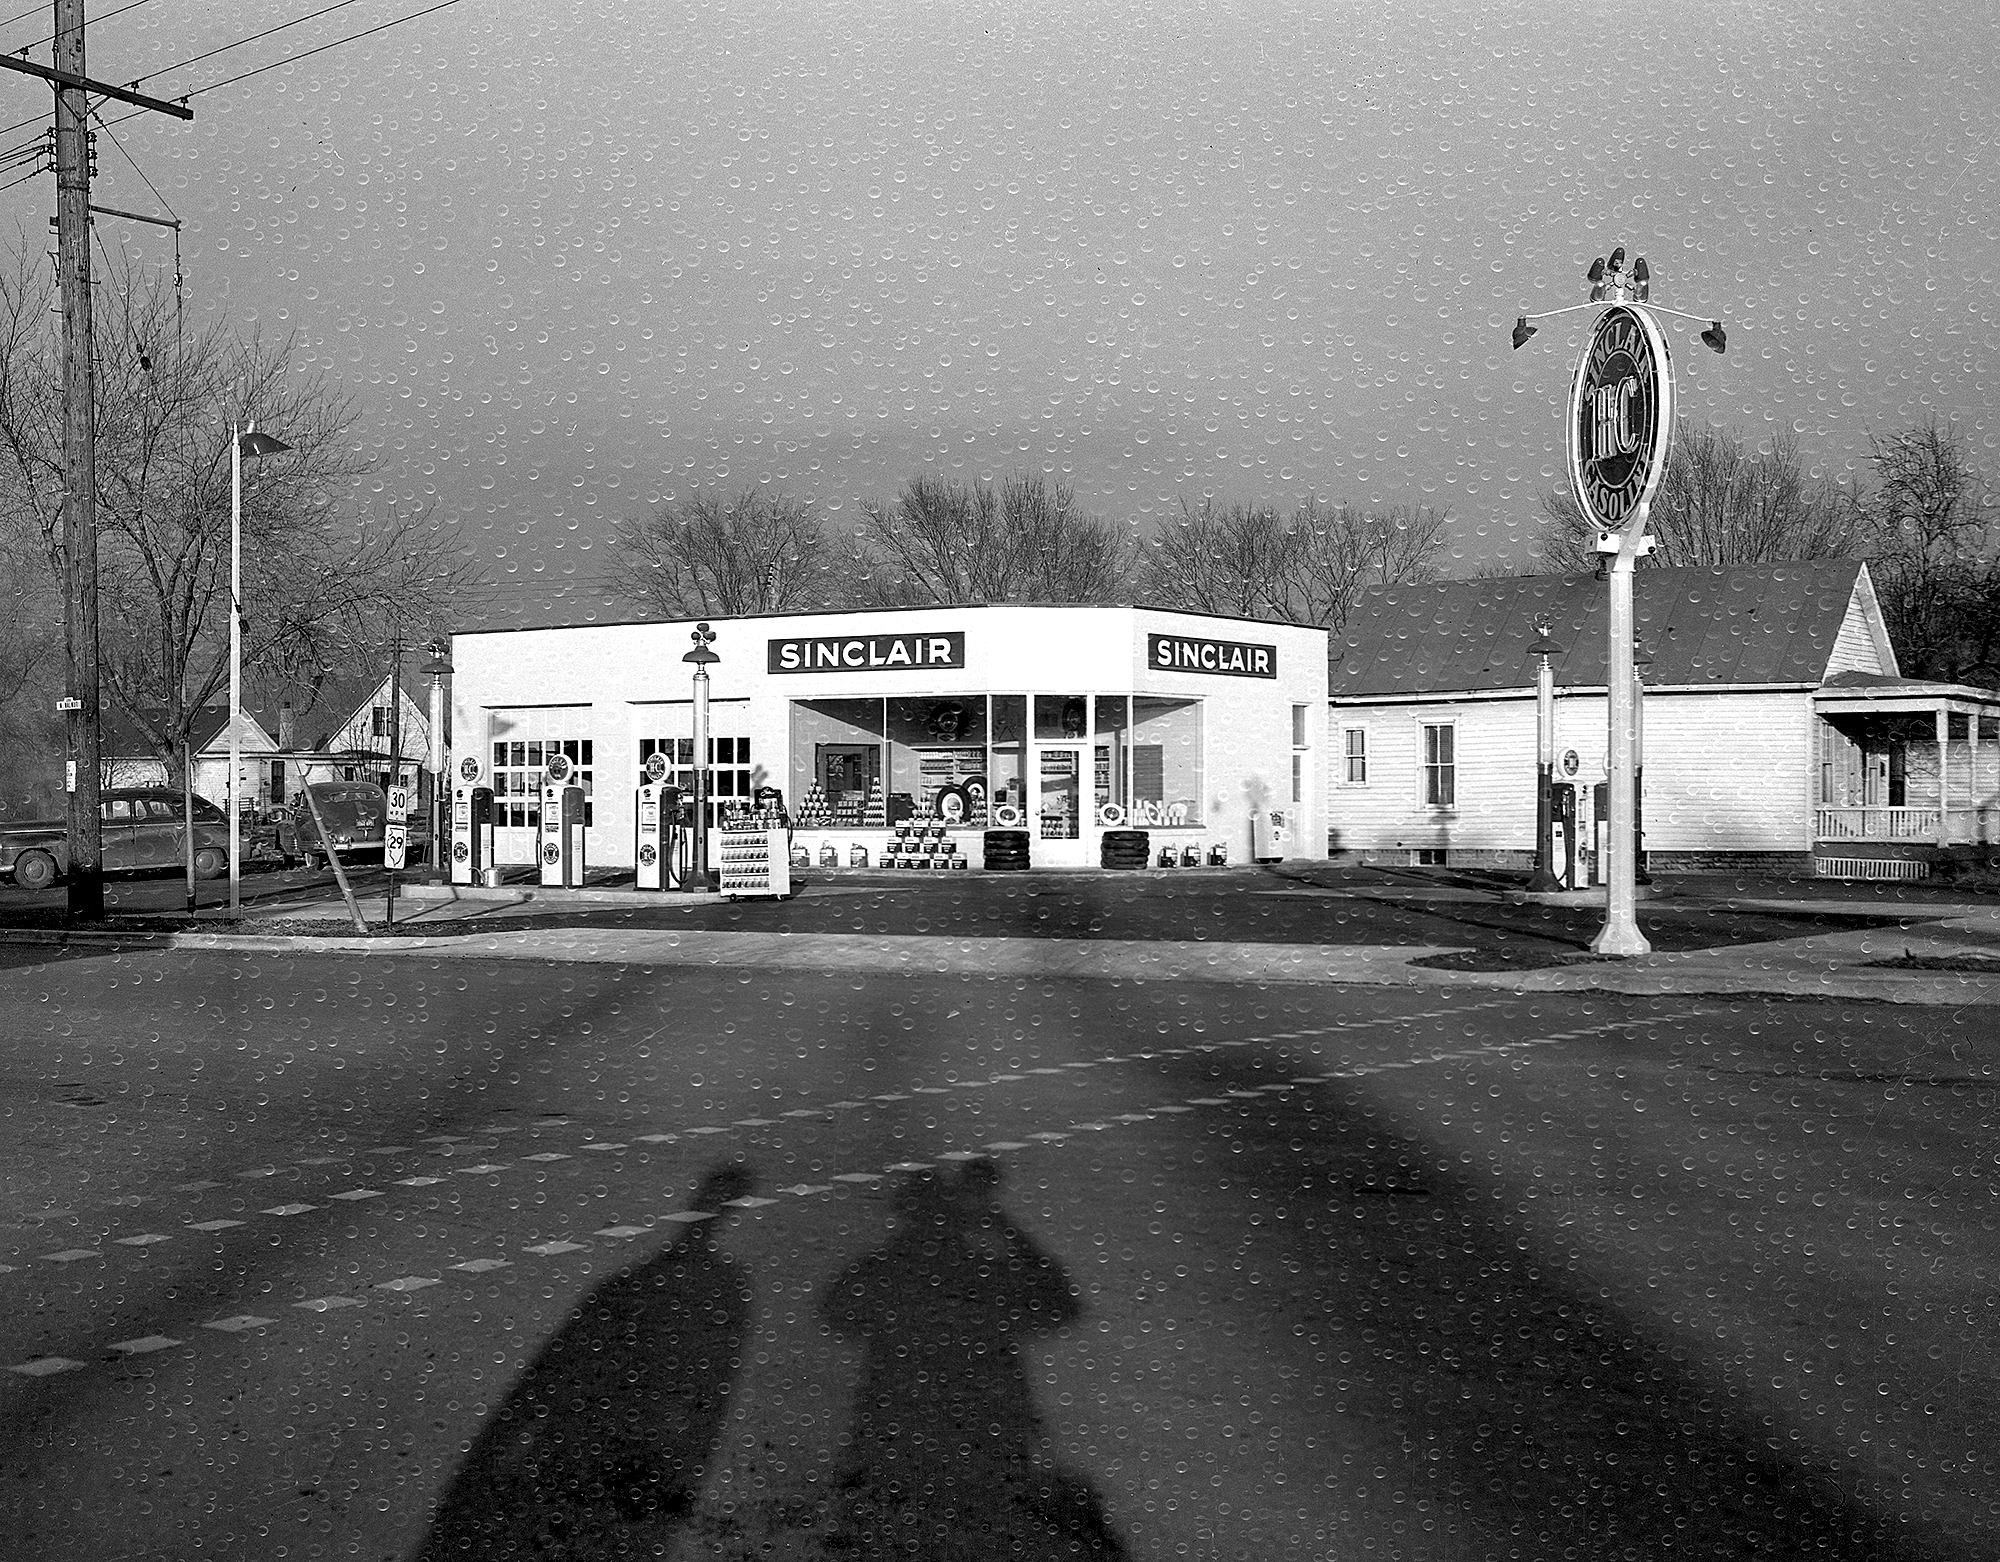 Sinclair service station, Ninth Street and South Grand Avenue, northwest corner, January 1950. In the 1930s, Sinclair operated 17 stations in Springfield.